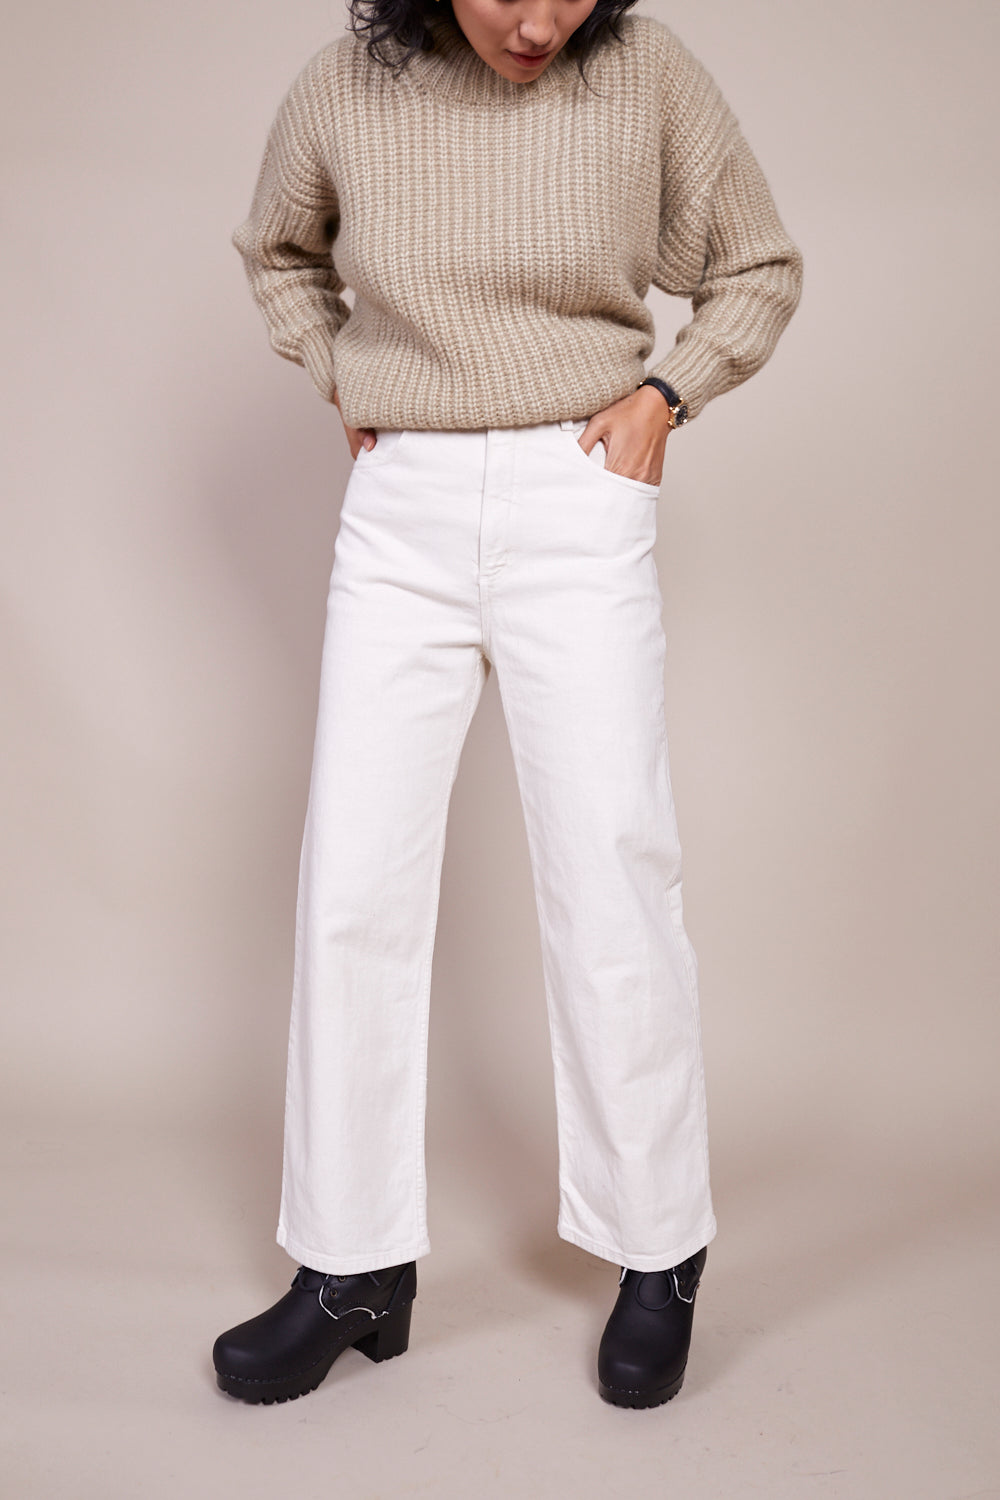 Pennon Pant in Dirty White